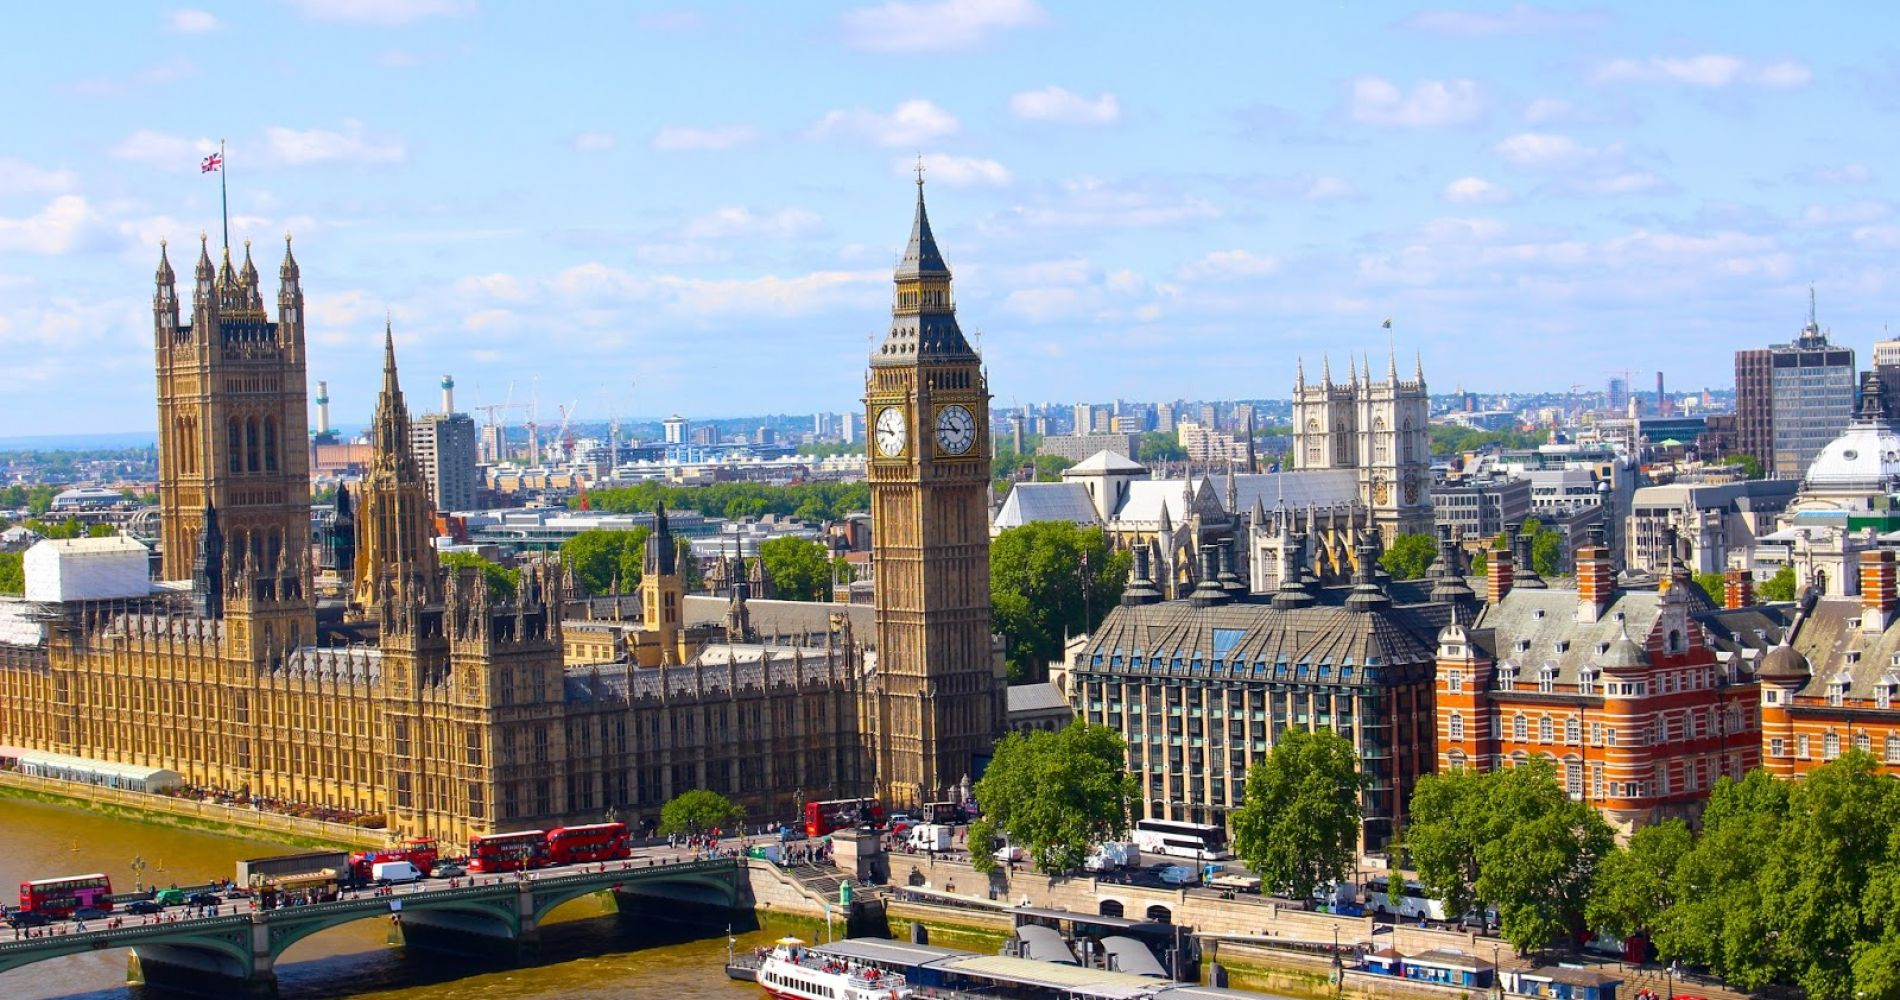 4D London Eye Tinggly Experience Gifts